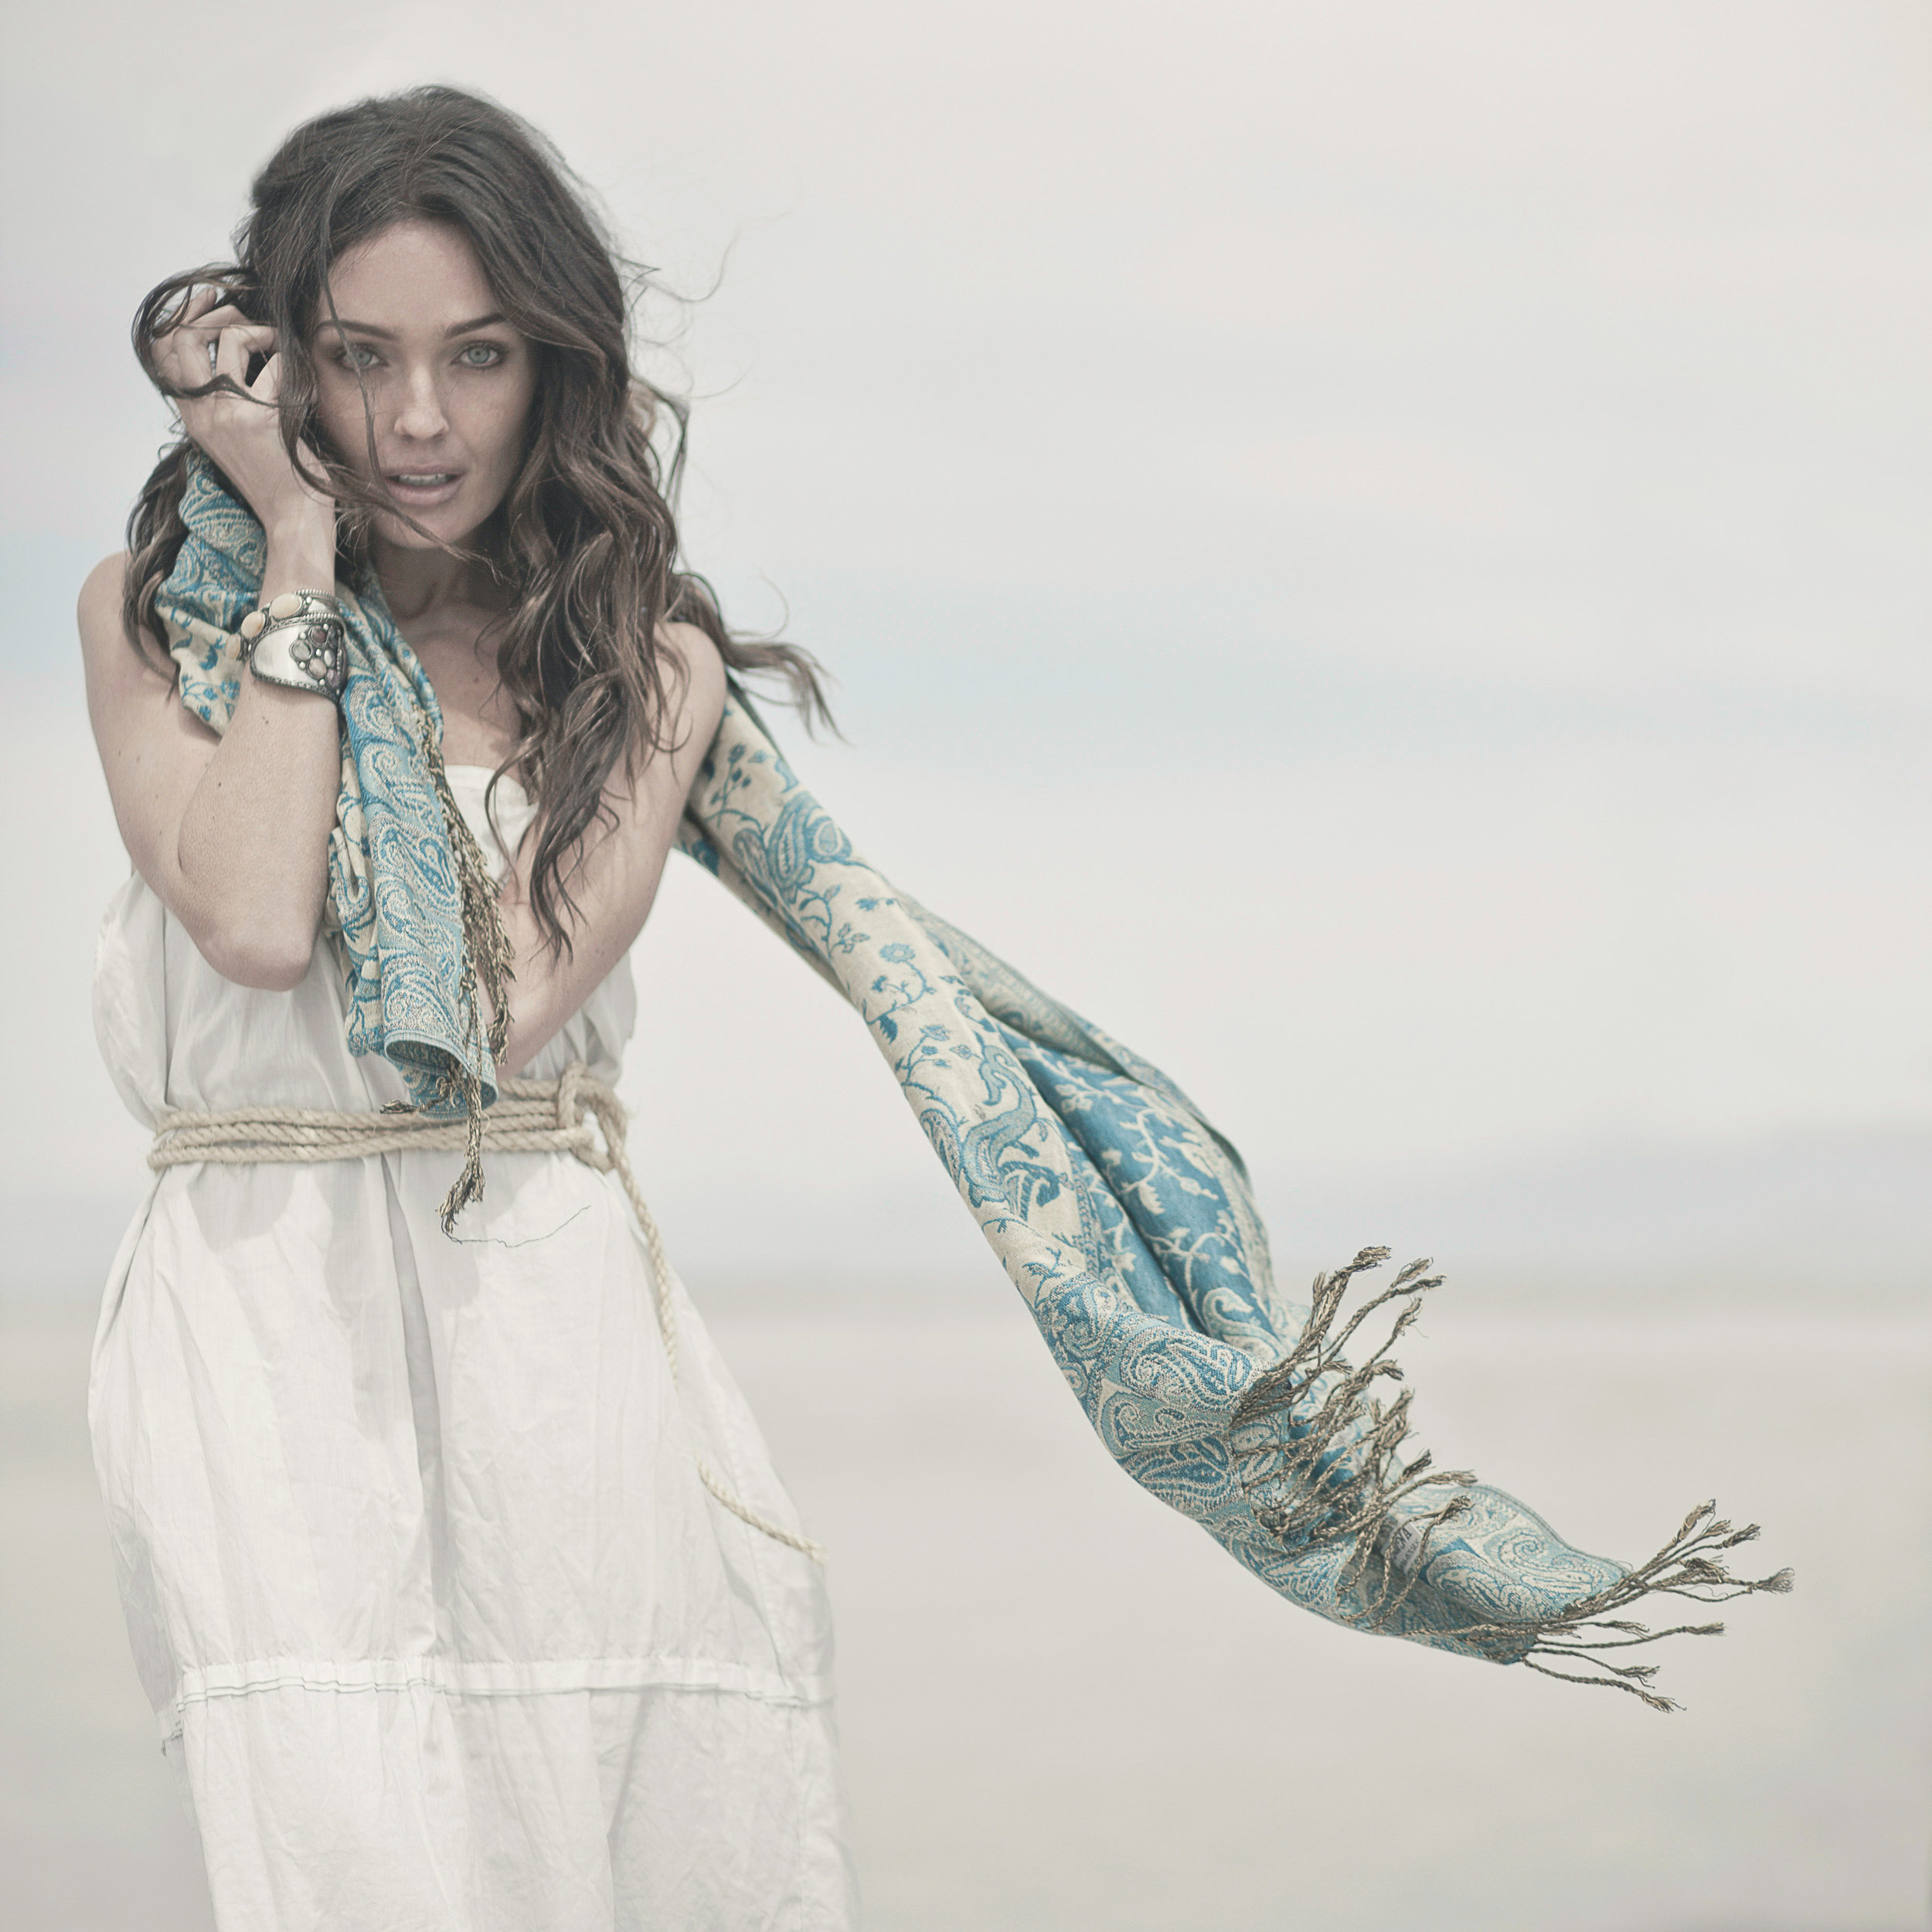 © duston-todd-womens-fashion-editorial-bohemian-scarf.jpg